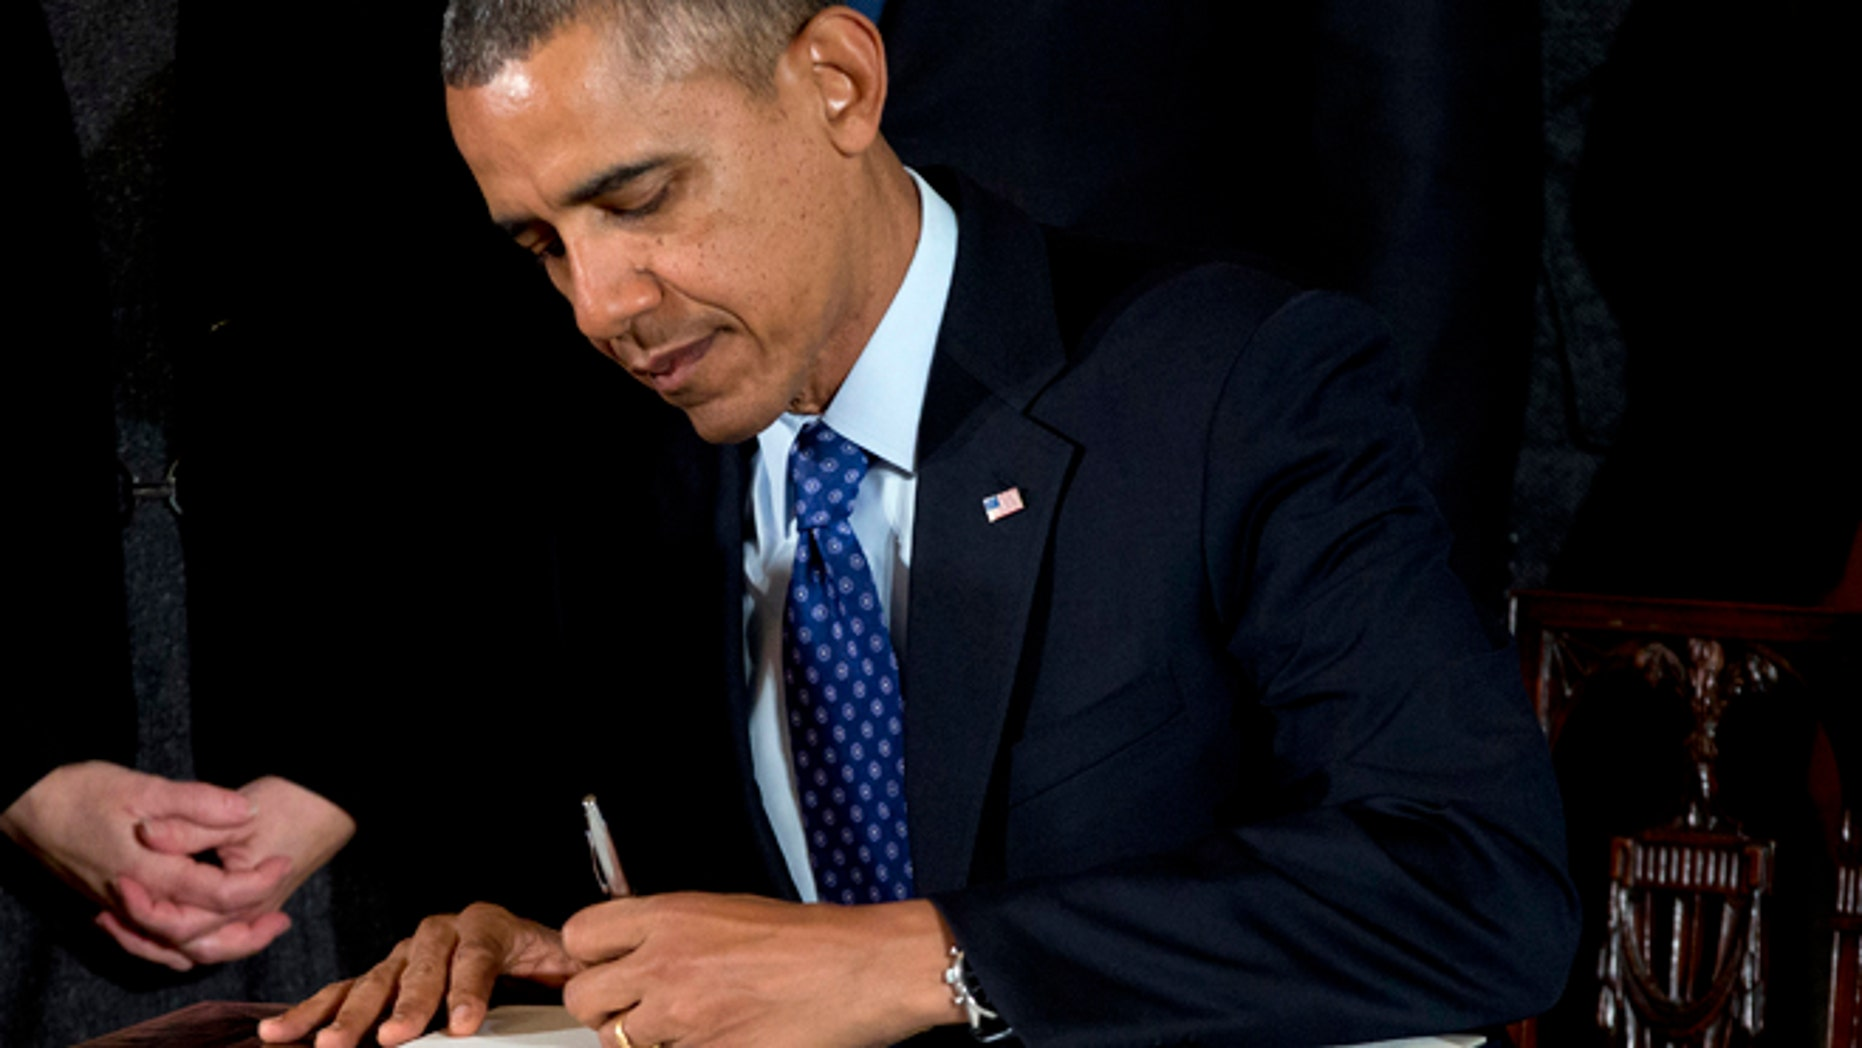 Jan. 22, 2014: President Barack Obama signs a memorandum creating a task force to respond to campus rapes during an event for the Council on Women and Girls in the East Room of the White House in Washington.